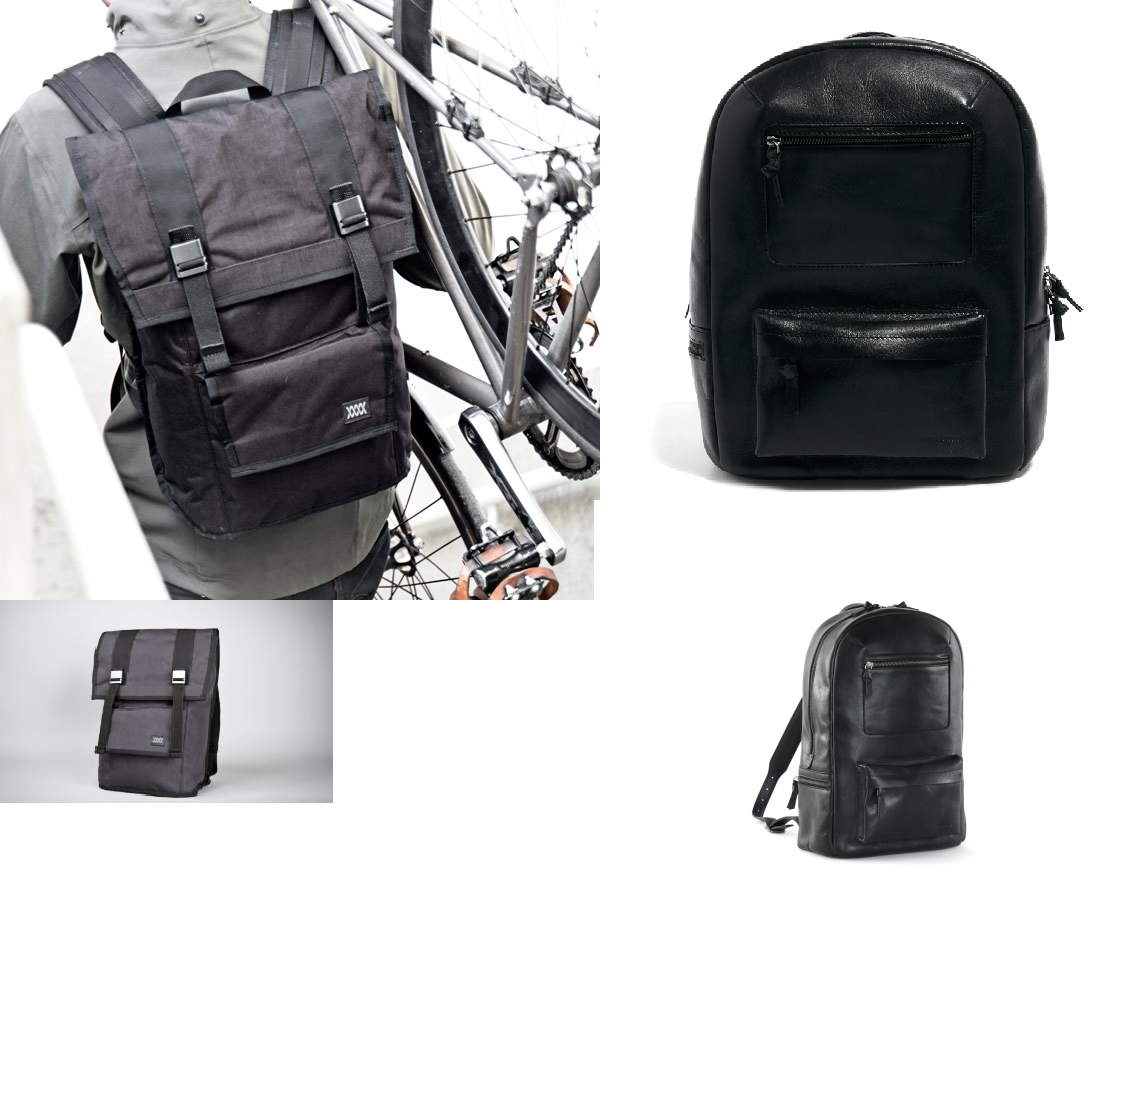 fa/ - Fashion - Search: backpack*, offset: 1200